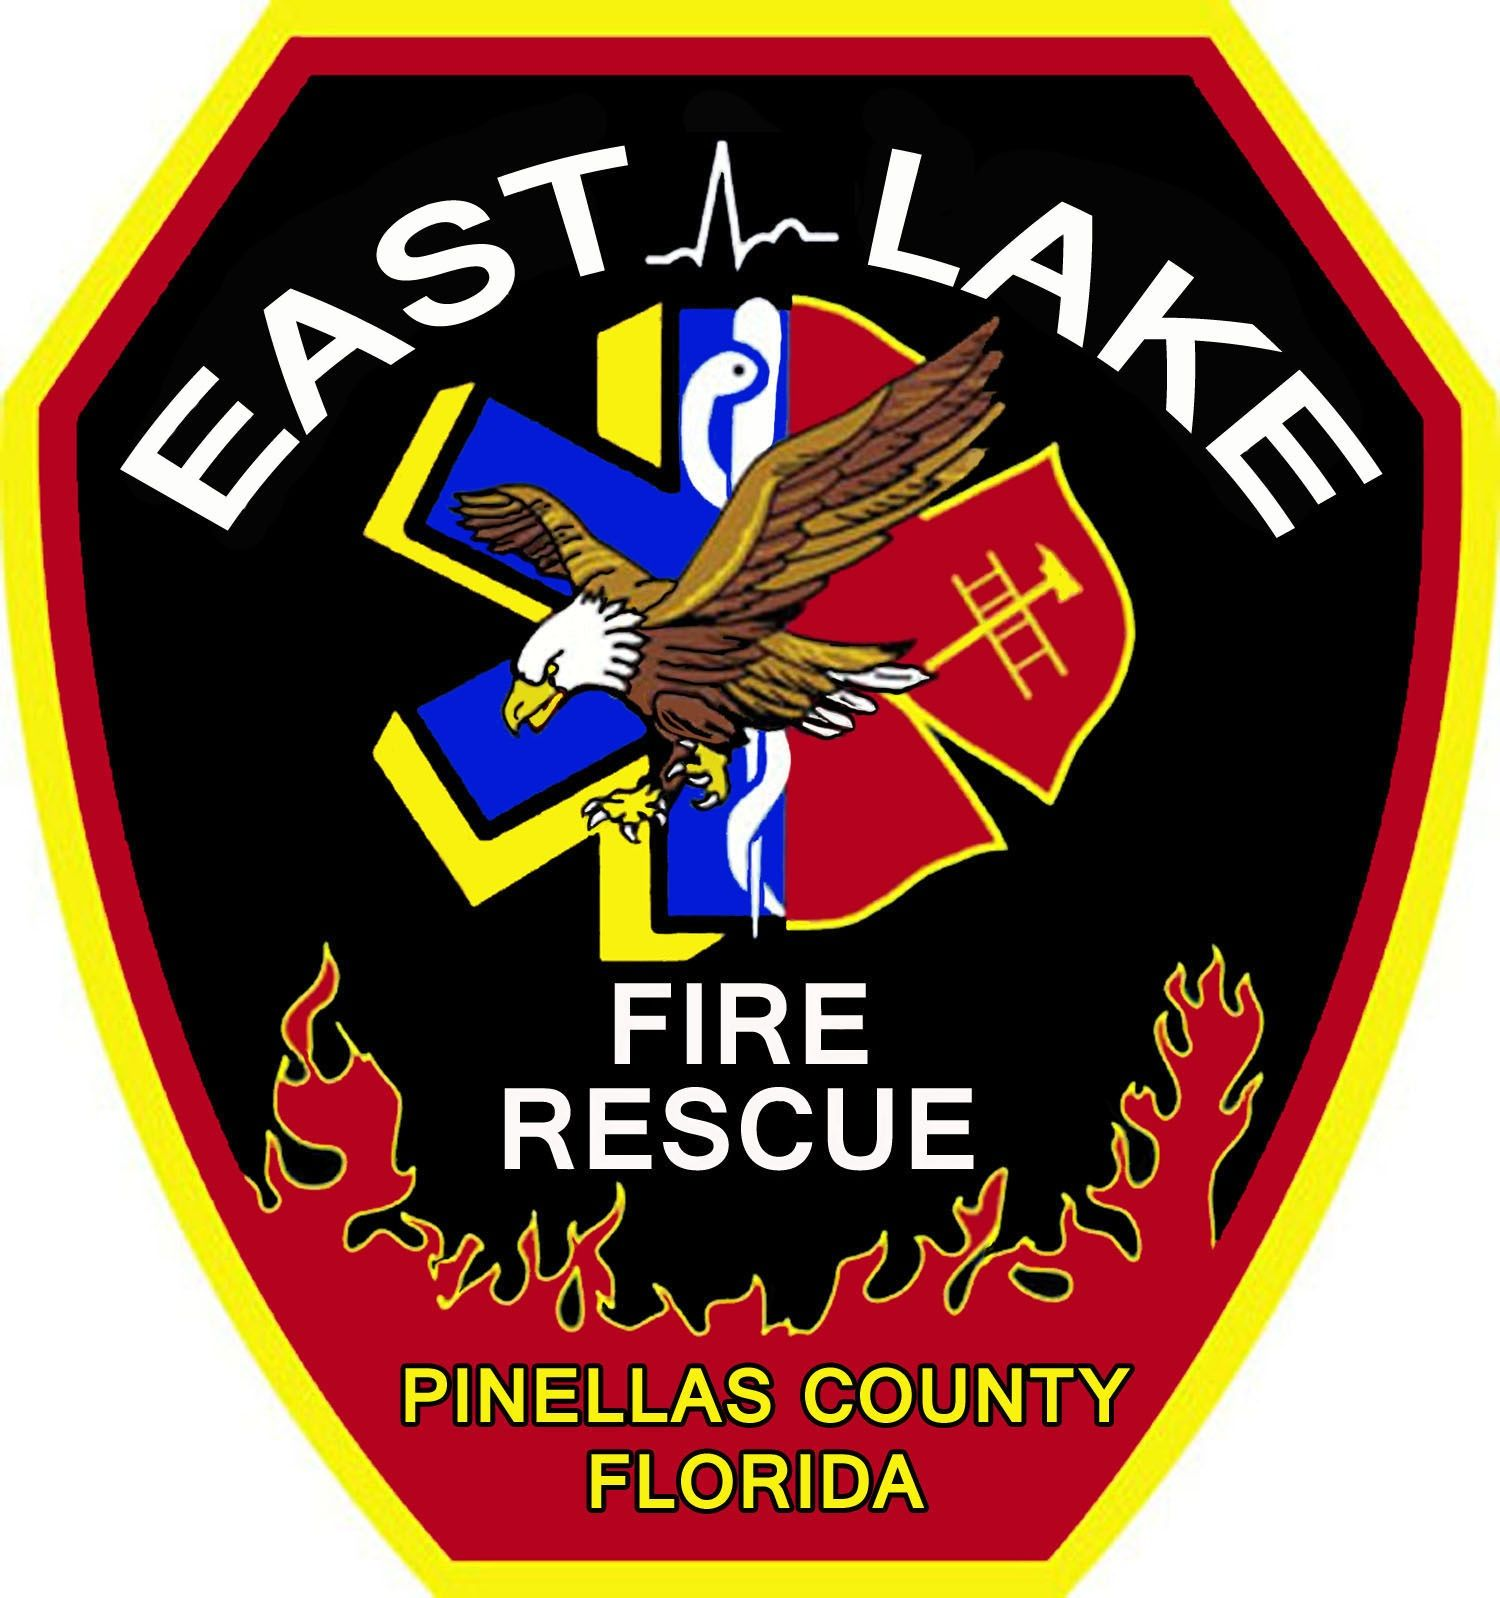 East lake fire rescue annual 5k east lake fire rescue